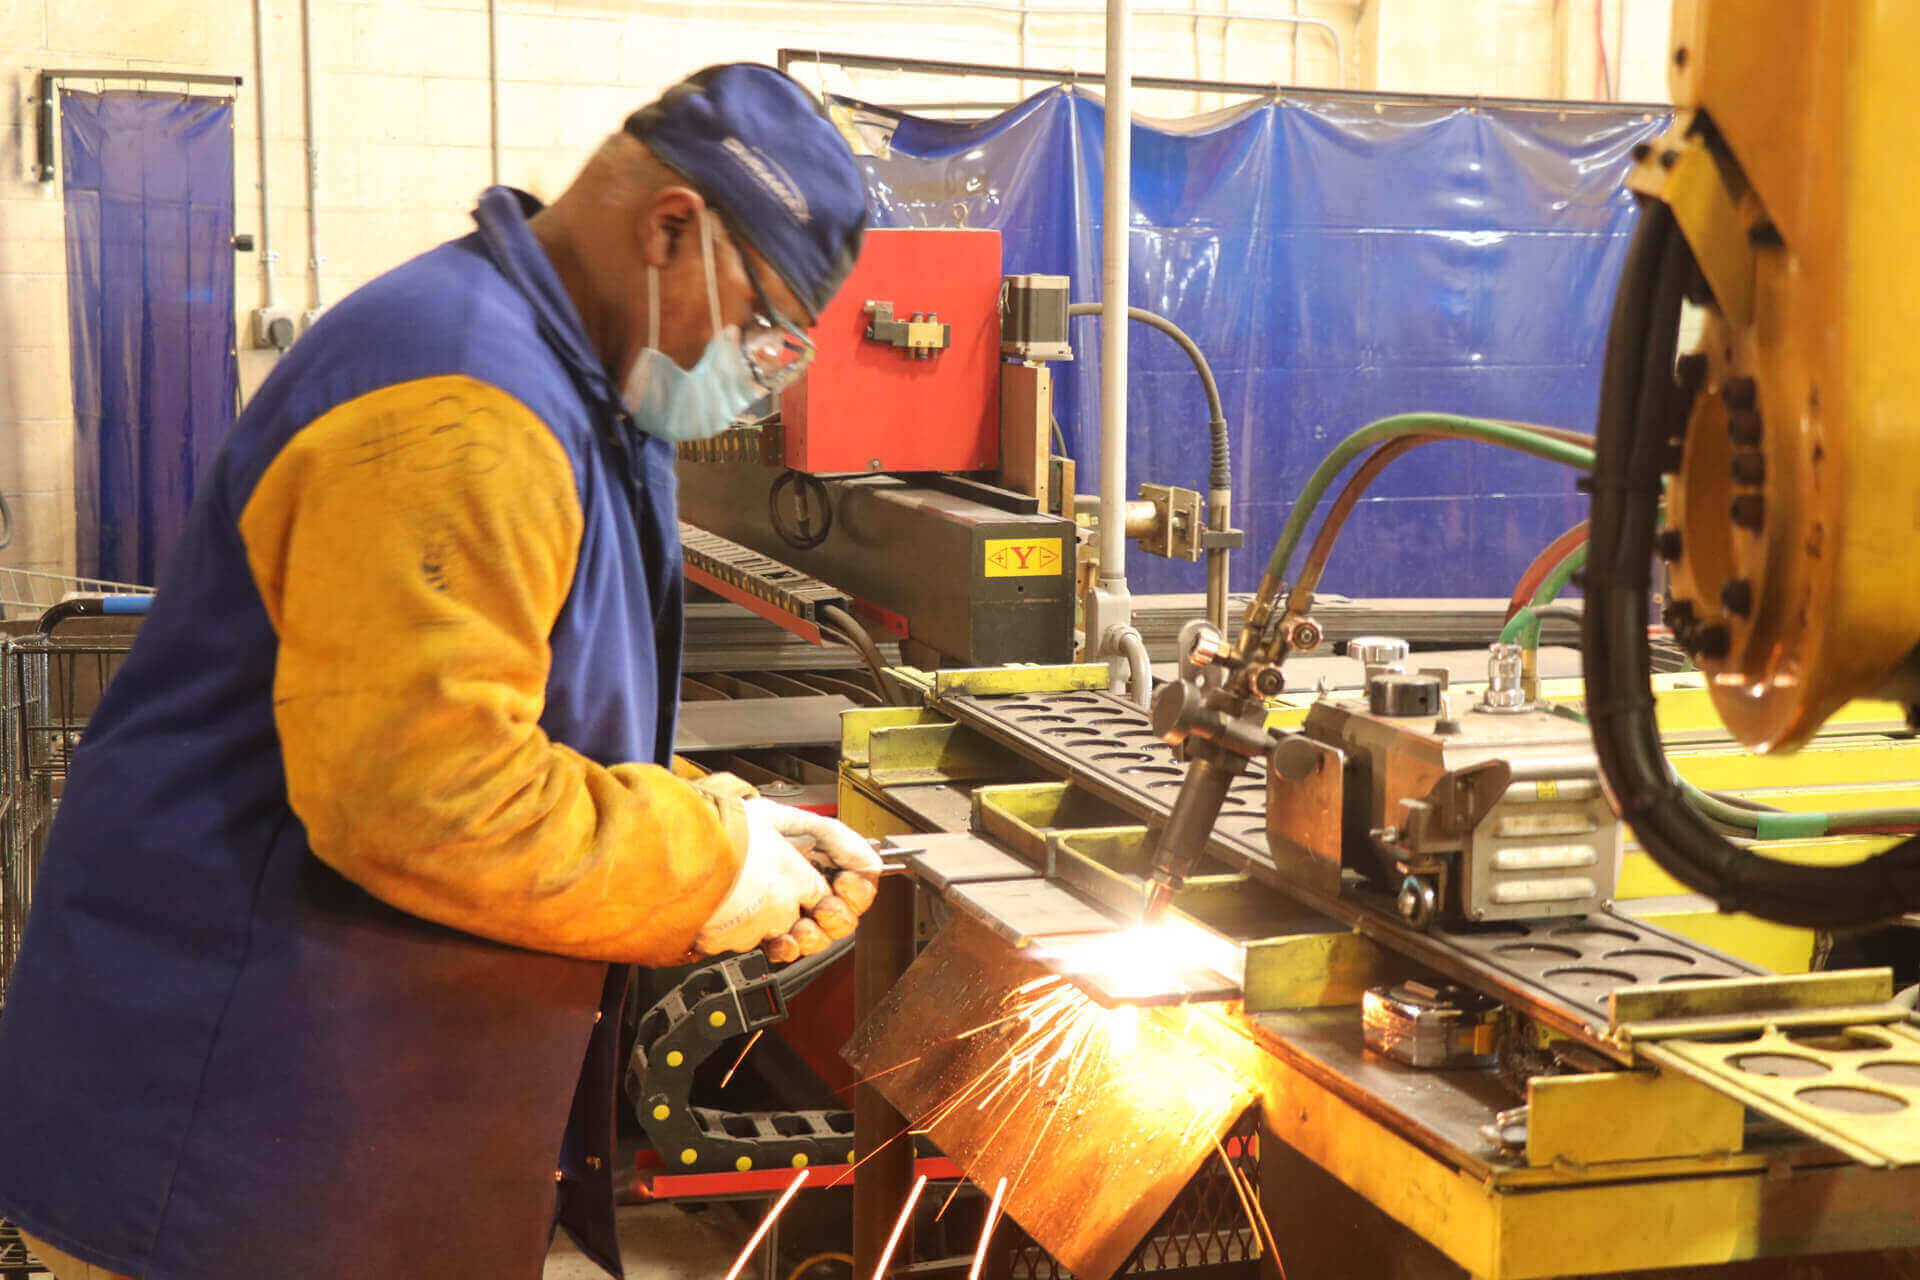 The Differences Between Welding, Brazing And Soldering In Welding Training